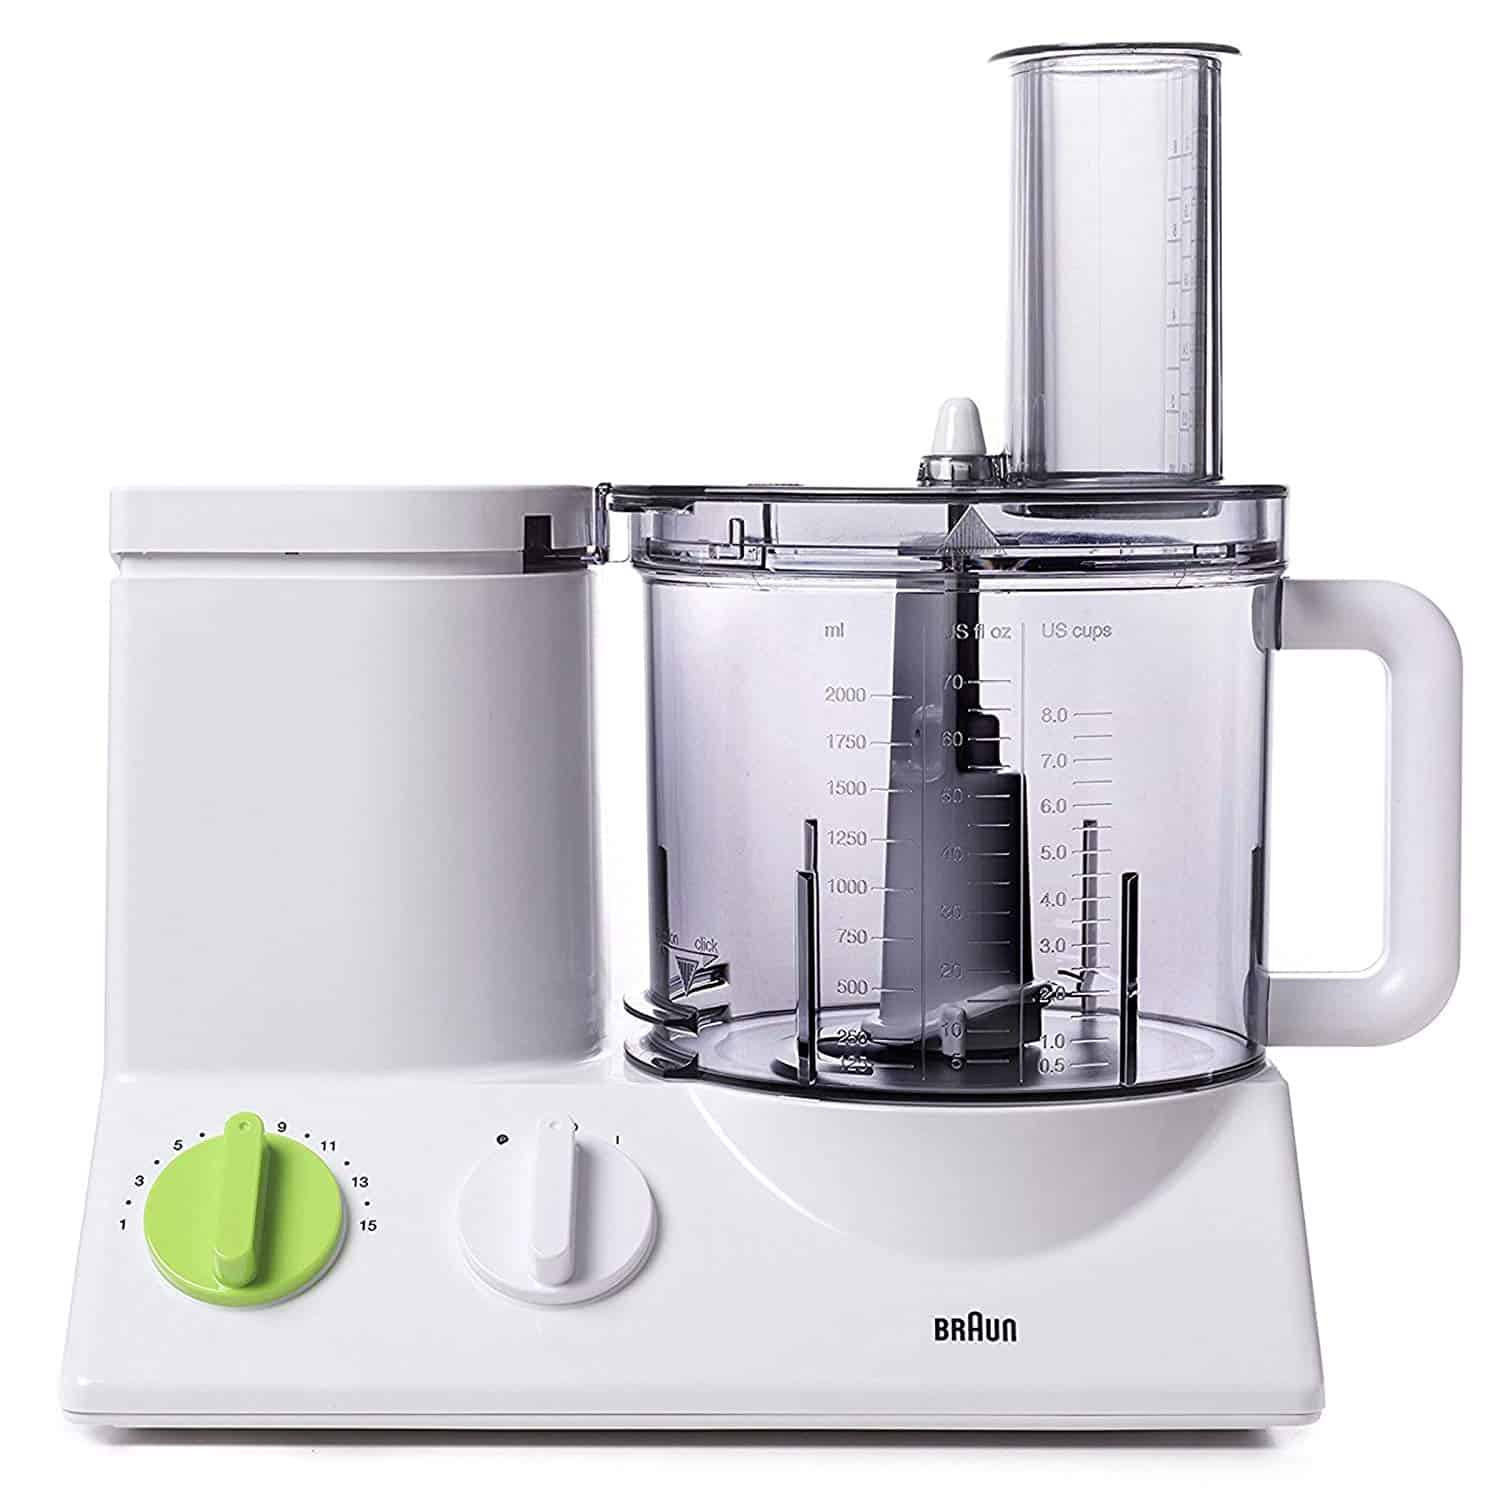 Braun FP3020 12-Cup Food Processor